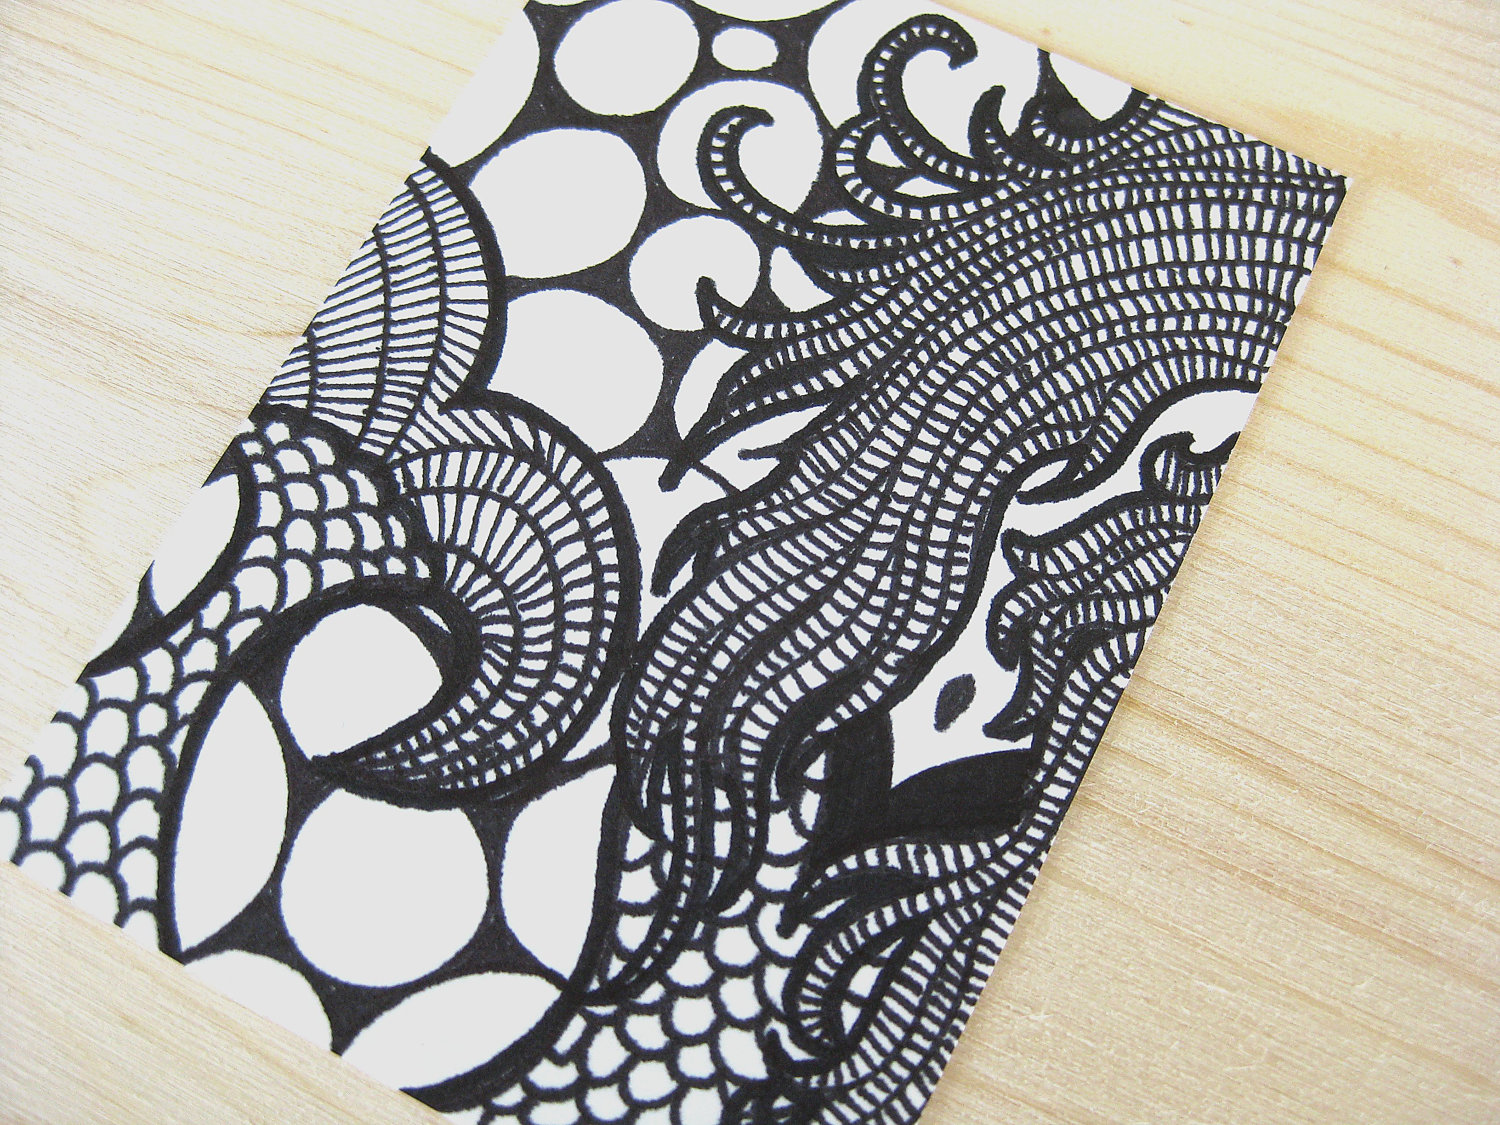 1500x1125 Original Aceo Atc Art Ink Abstract Drawing Black Amp White Elusive